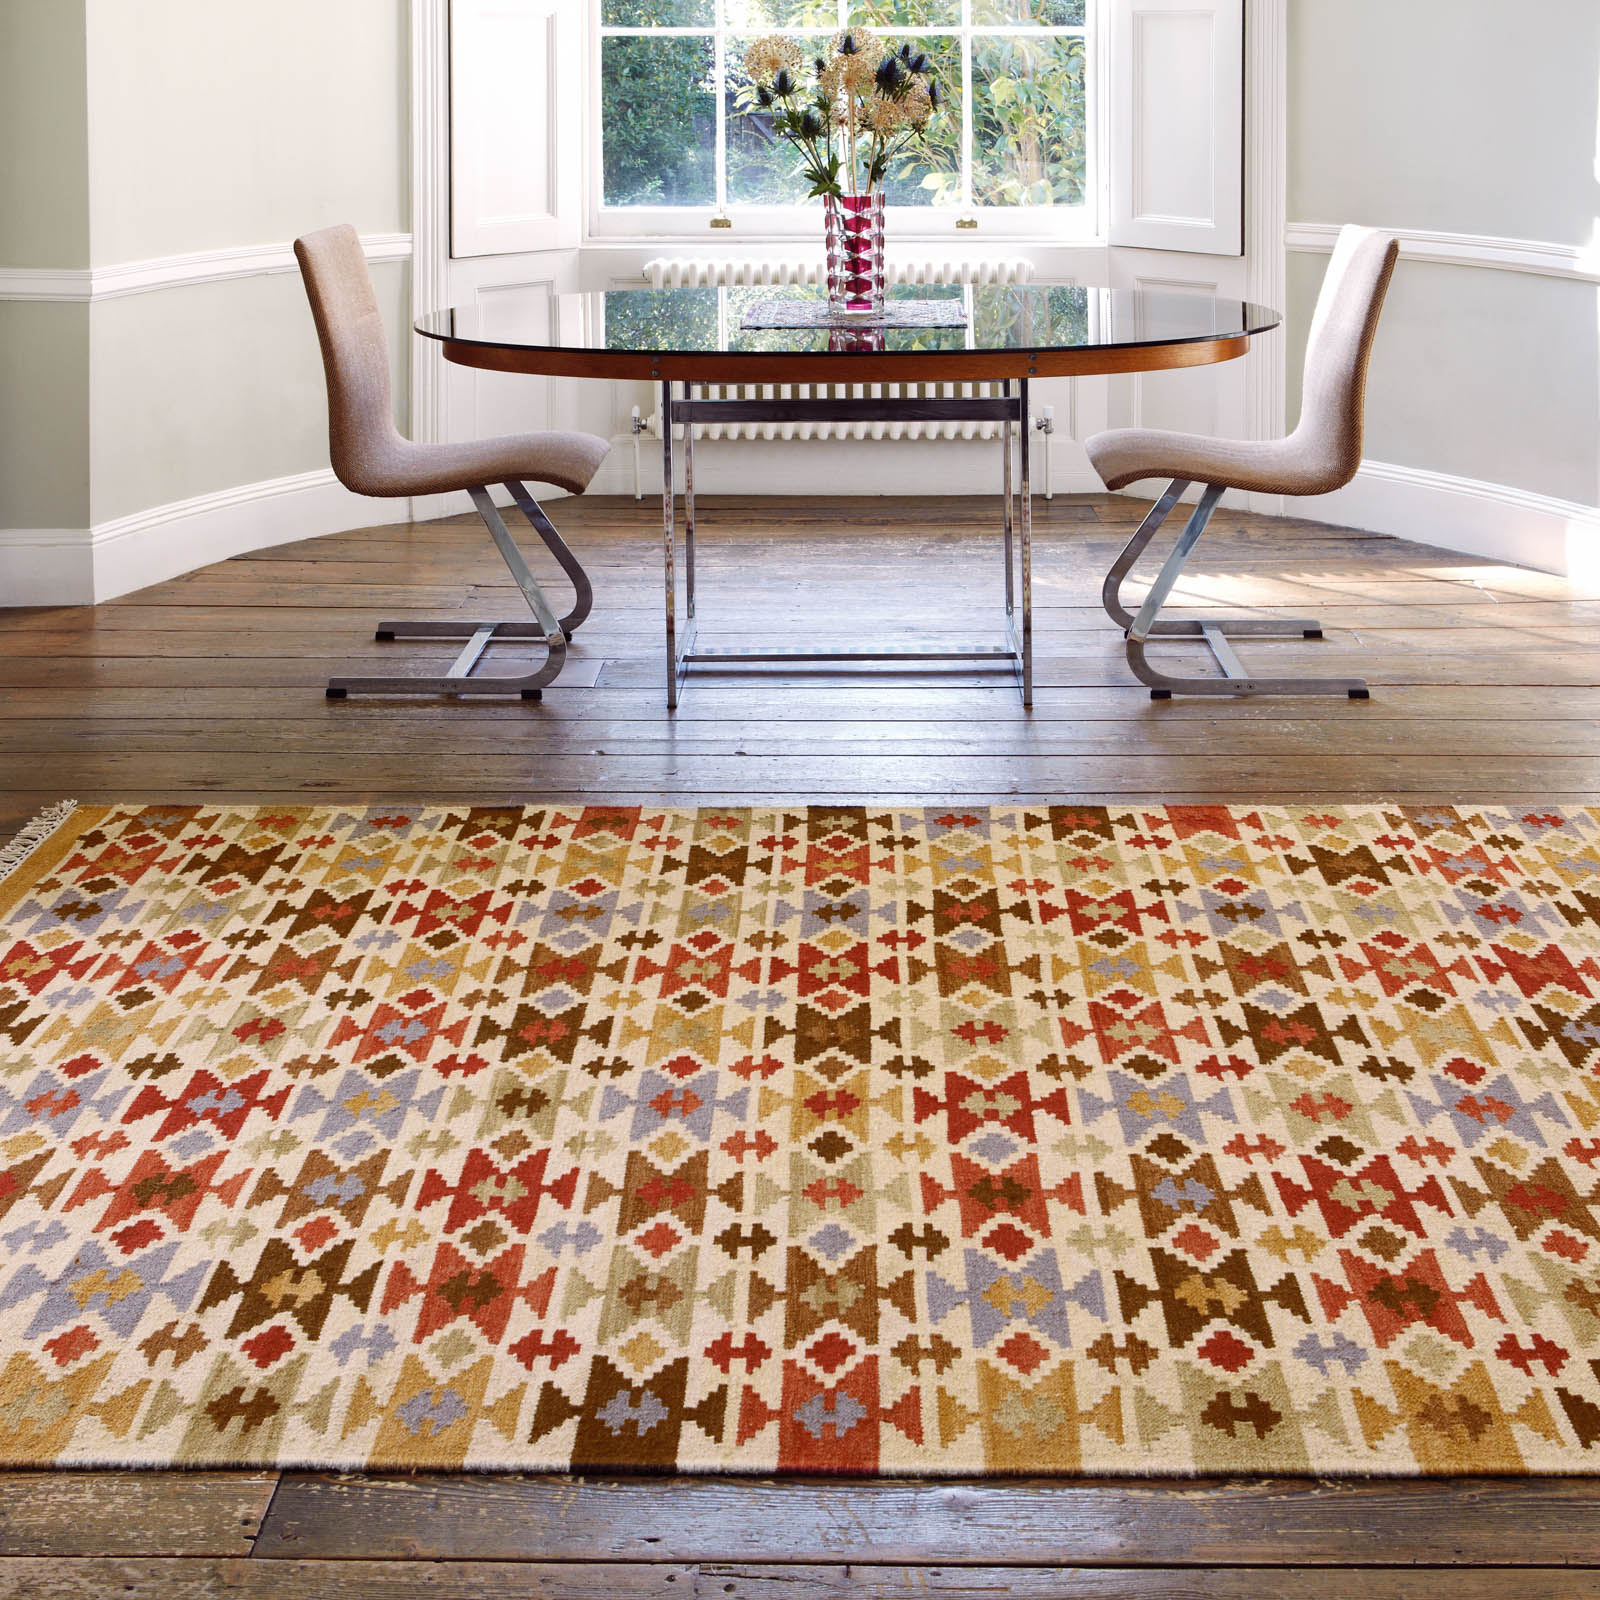 bohemian kelim rug in a dining room from the rug seller